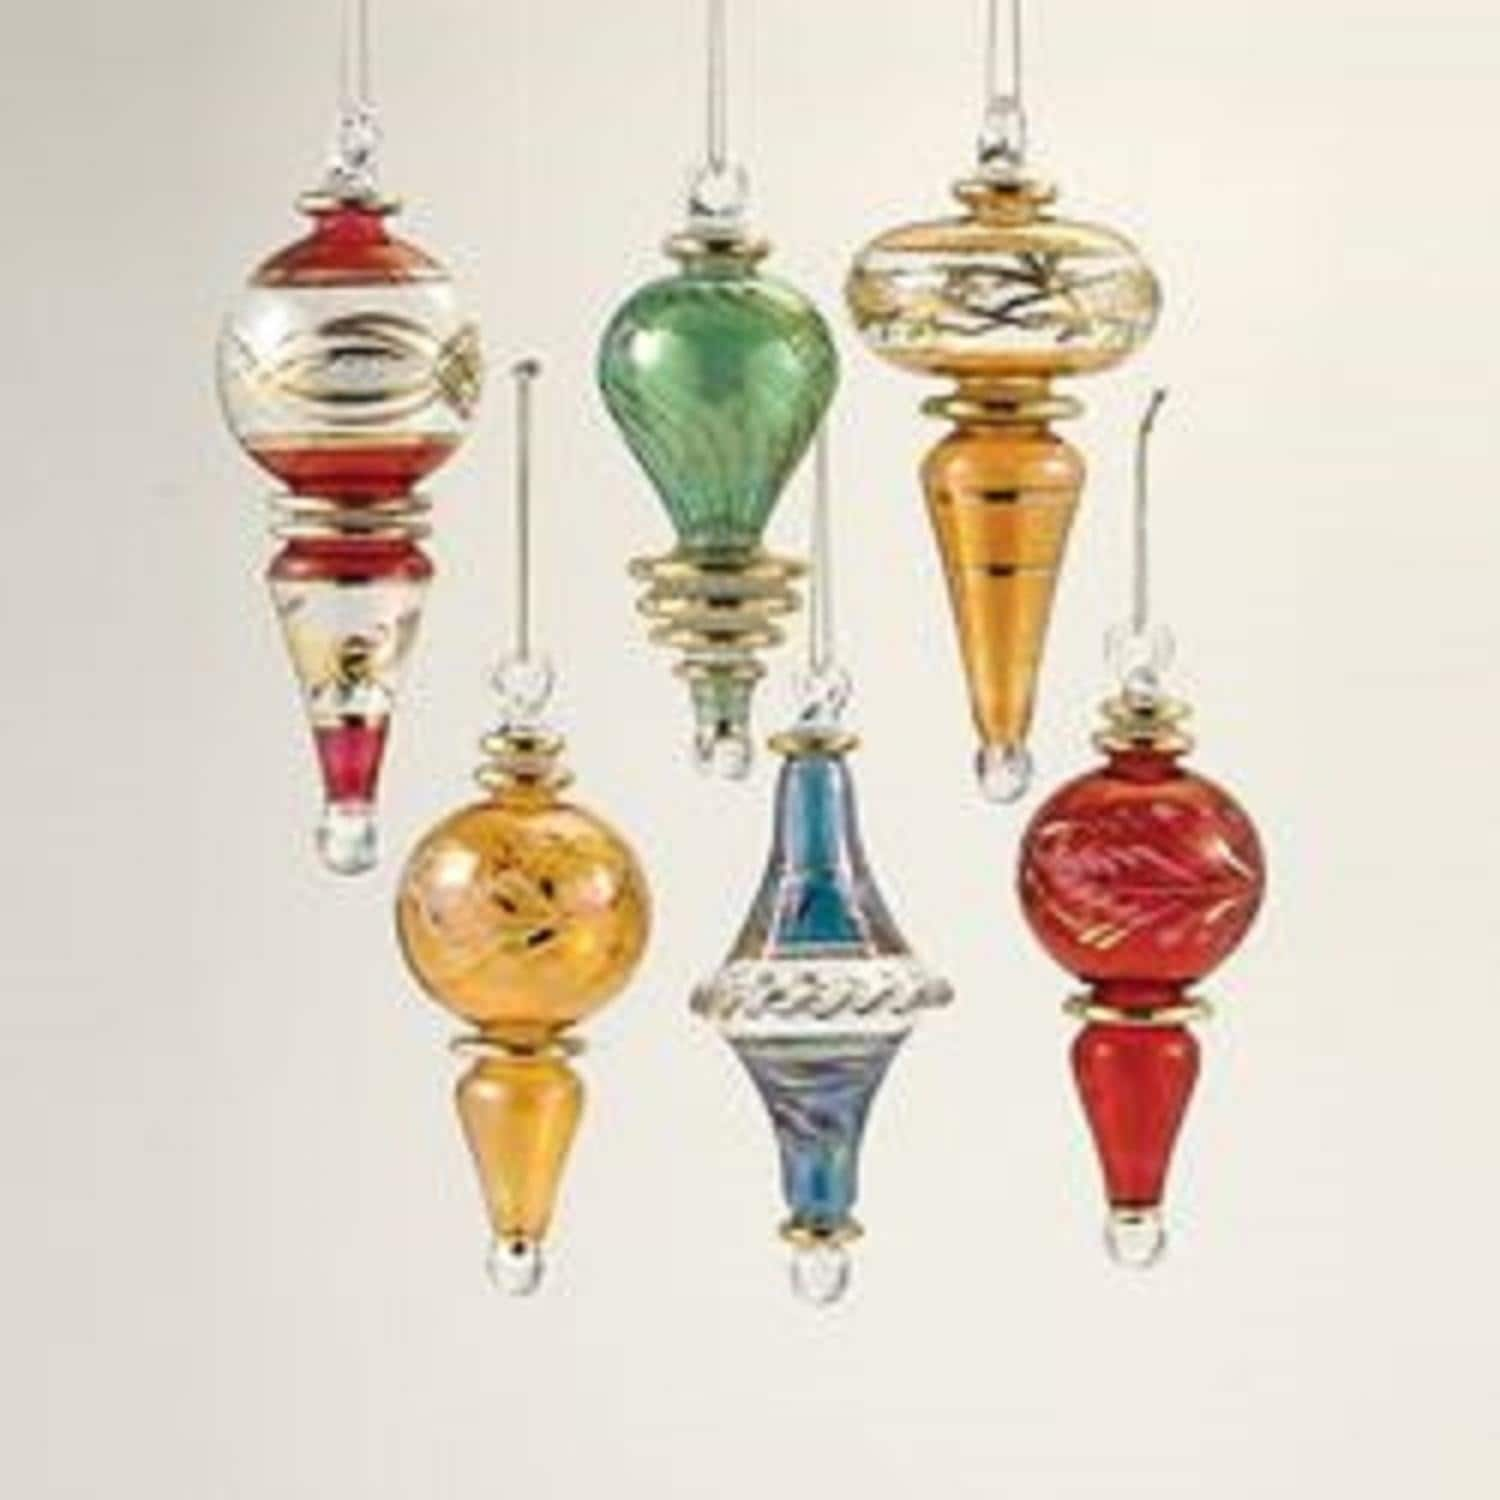 Set Of 6 Vibrantly Colored Decorative Christmas Glass Drop Ornaments